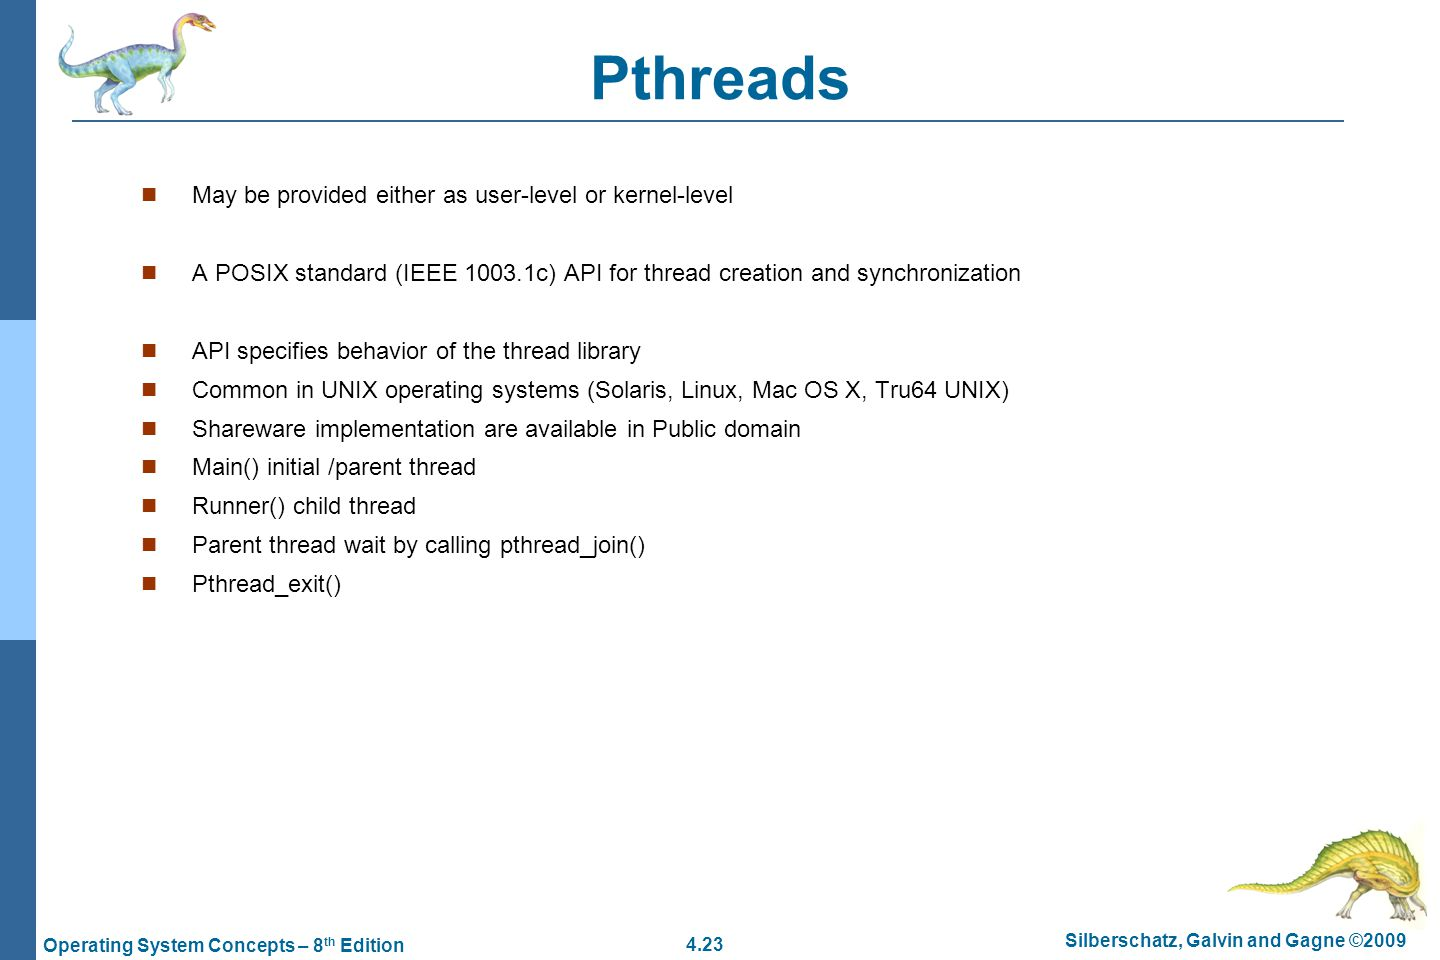 4.23 Silberschatz, Galvin and Gagne ©2009 Operating System Concepts – 8 th Edition Pthreads May be provided either as user-level or kernel-level A POSIX standard (IEEE c) API for thread creation and synchronization API specifies behavior of the thread library Common in UNIX operating systems (Solaris, Linux, Mac OS X, Tru64 UNIX) Shareware implementation are available in Public domain Main() initial /parent thread Runner() child thread Parent thread wait by calling pthread_join() Pthread_exit()